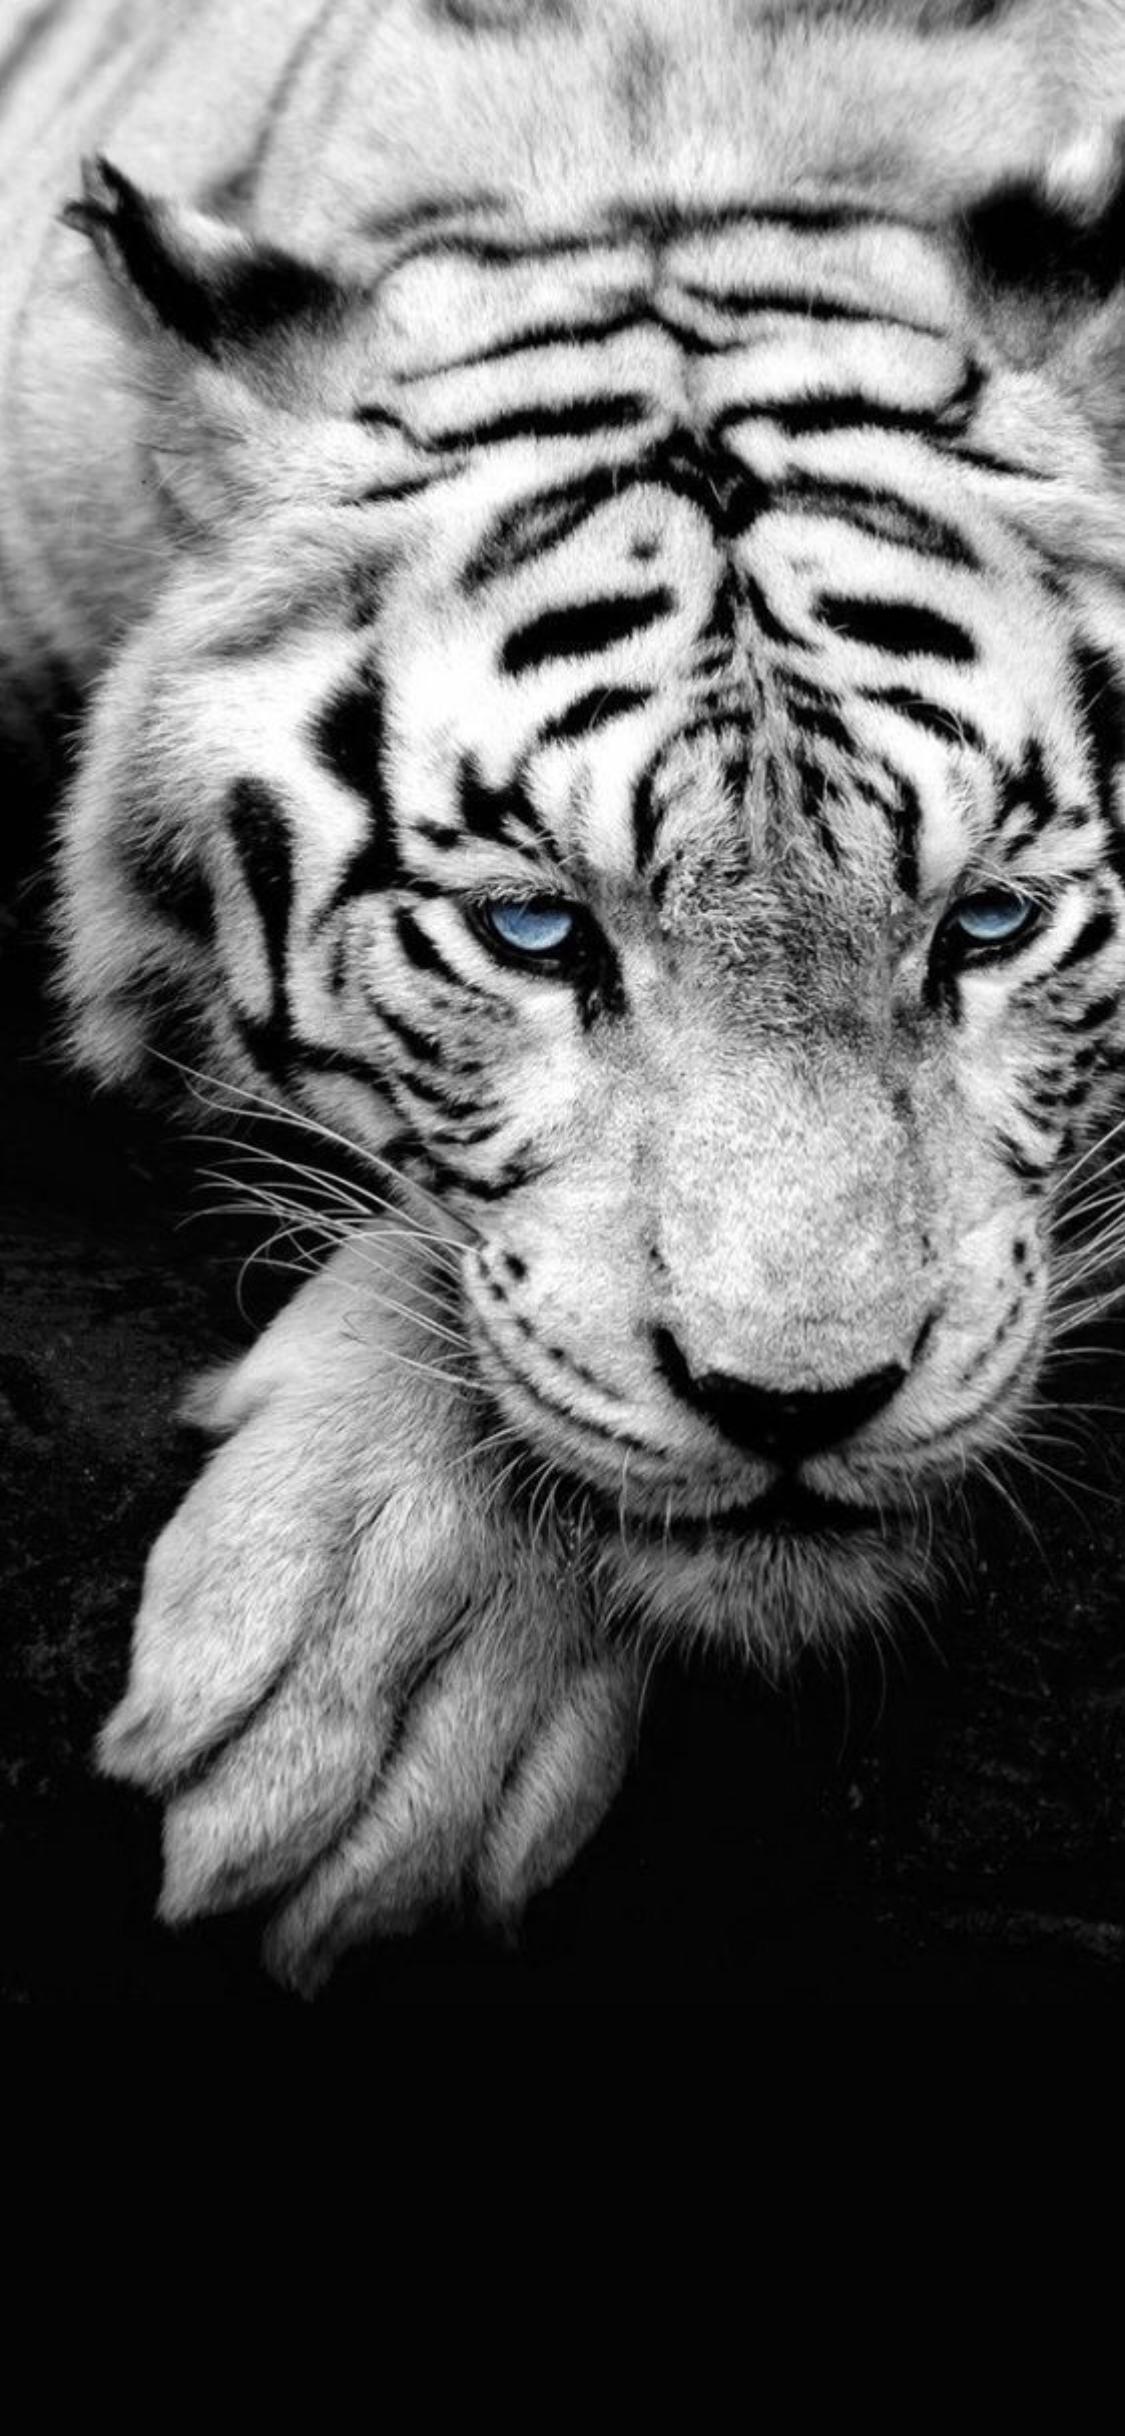 Wallpaper Iphone X Wild Animal Wallpaper Pet Tiger Tiger Wallpaper